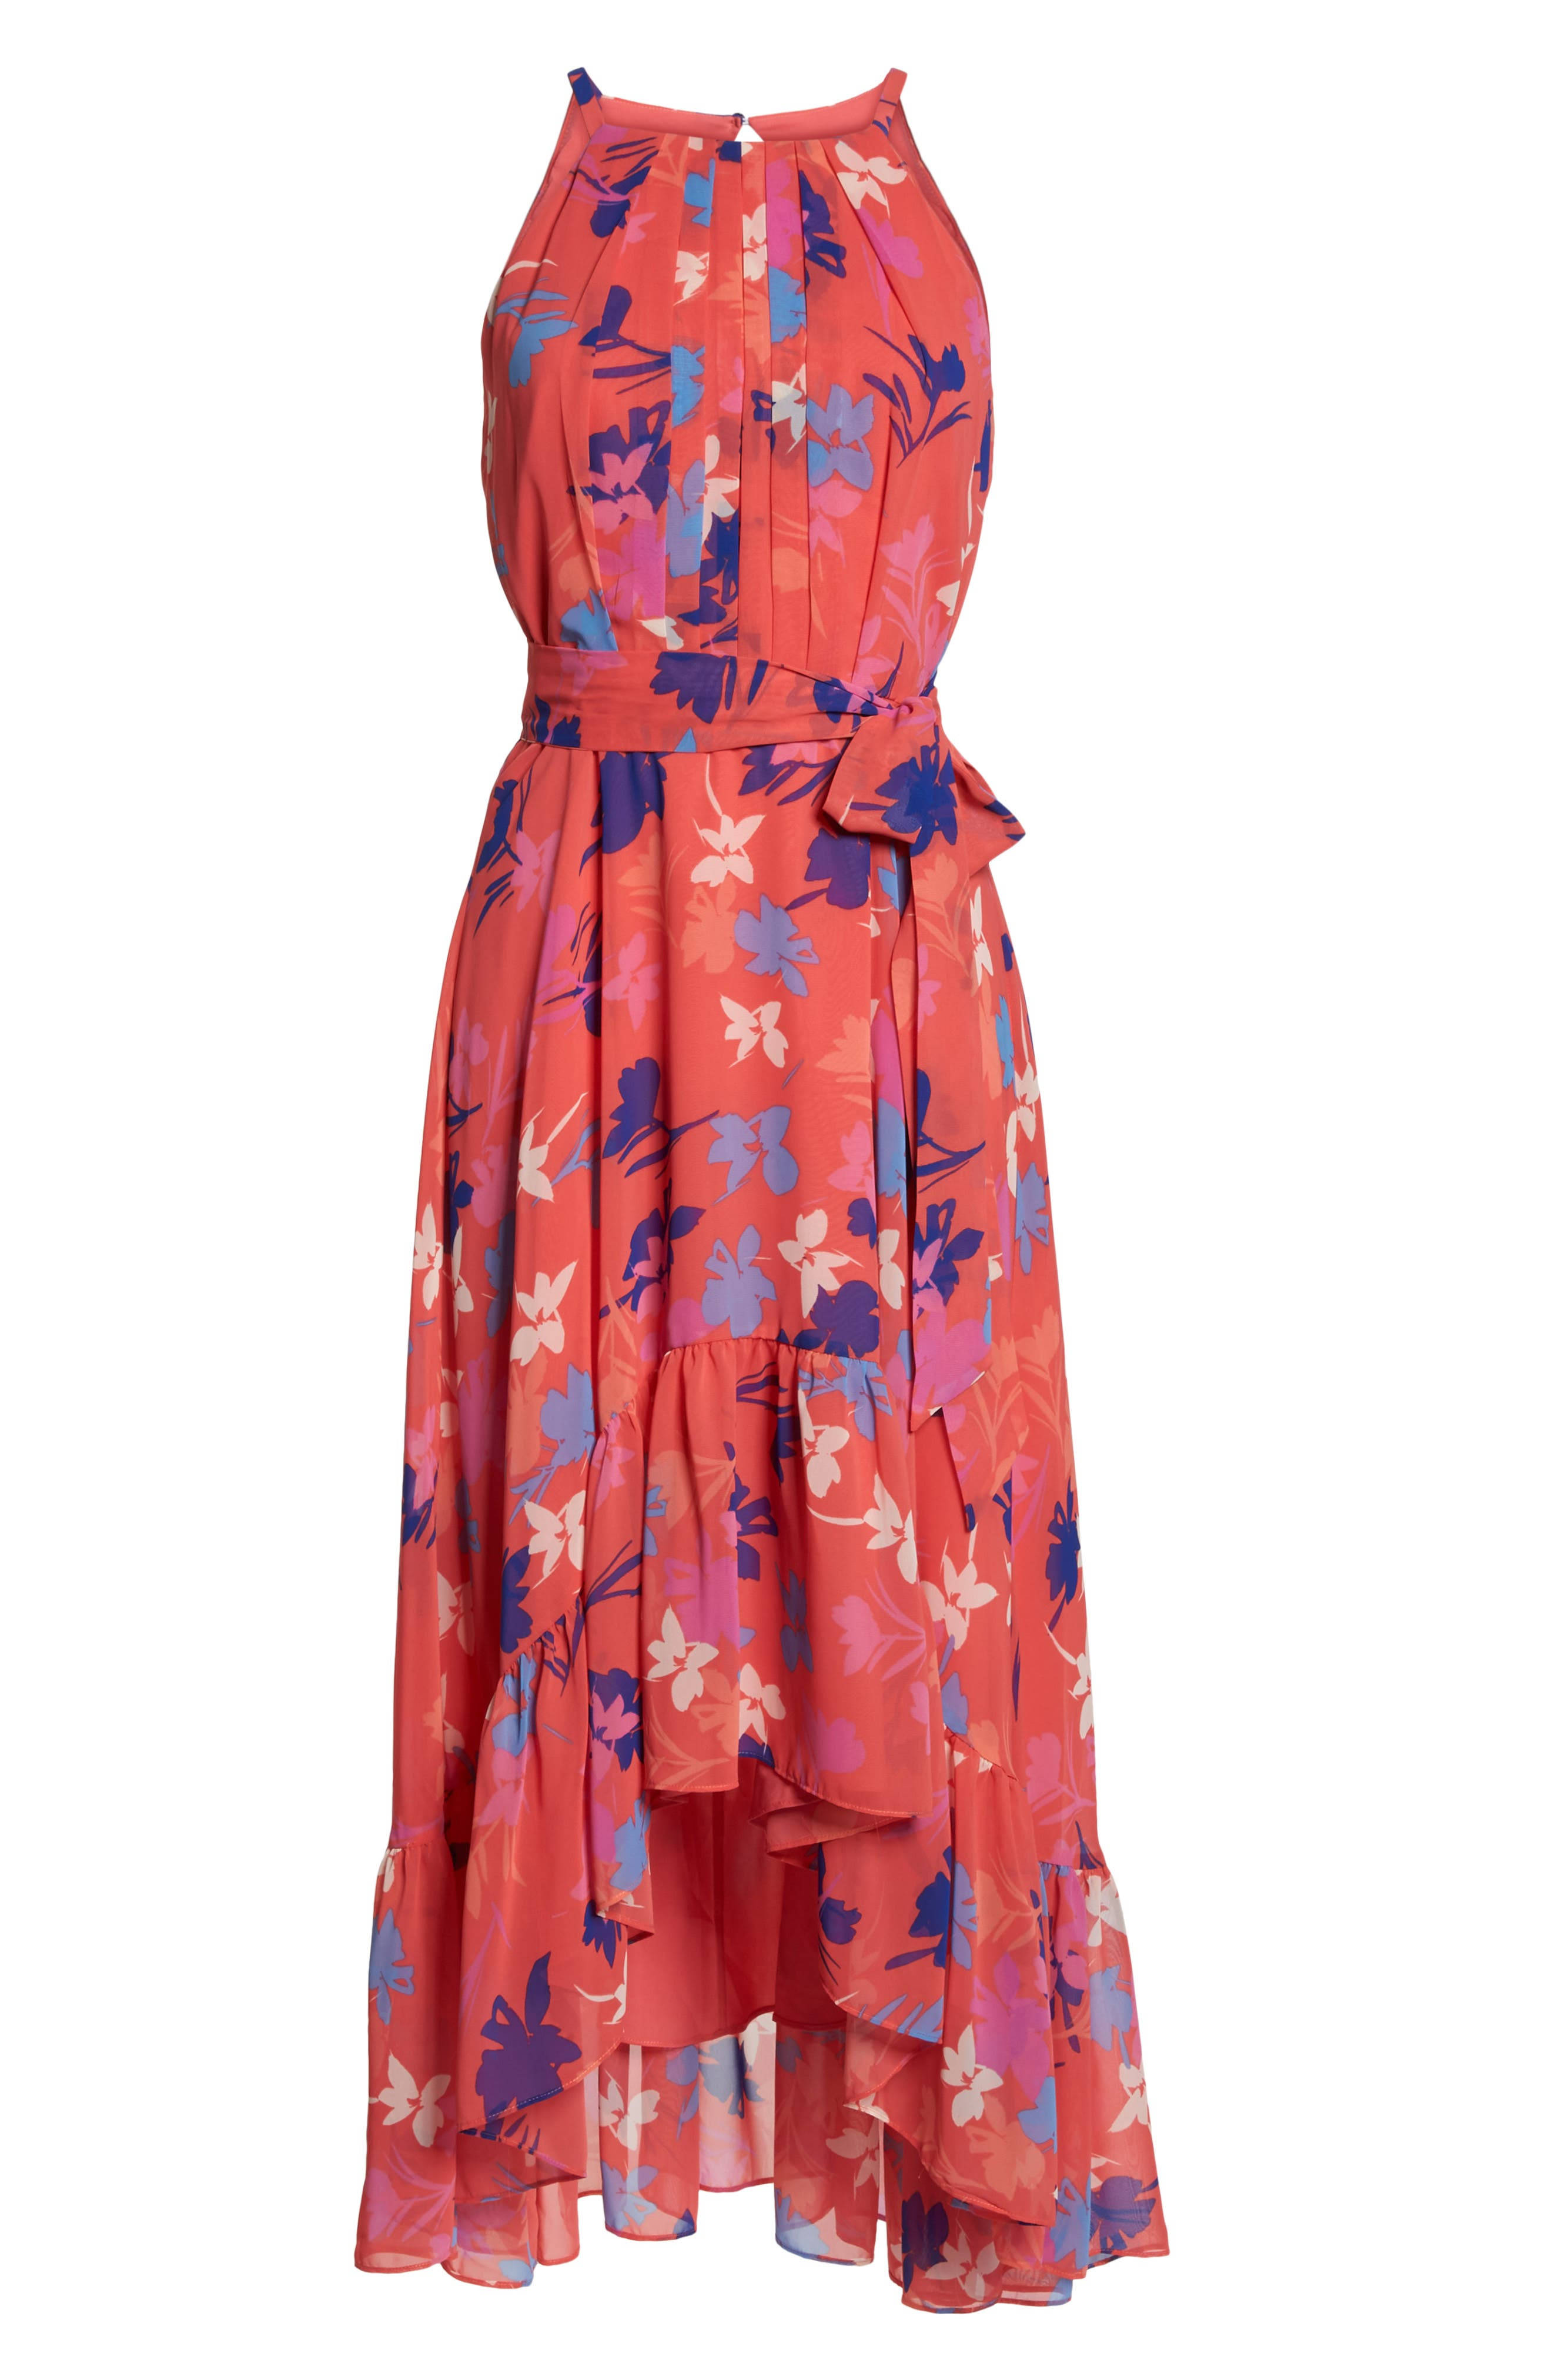 Floral High/Low Chiffon Halter Dress,                             Alternate thumbnail 7, color,                             653